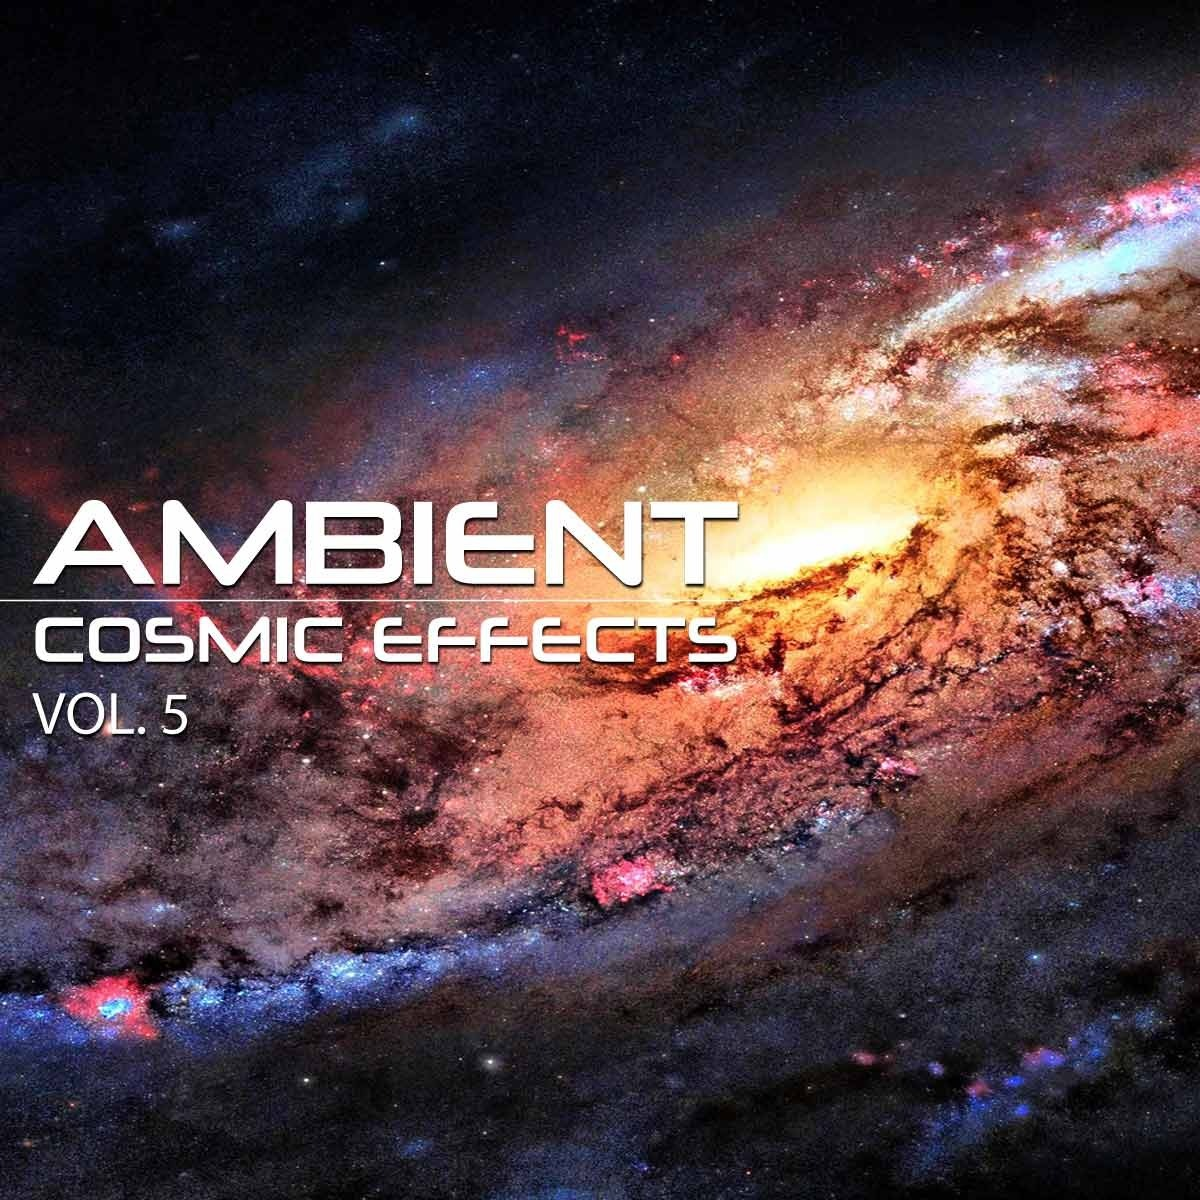 Ambient Cosmic Effects Vol 5